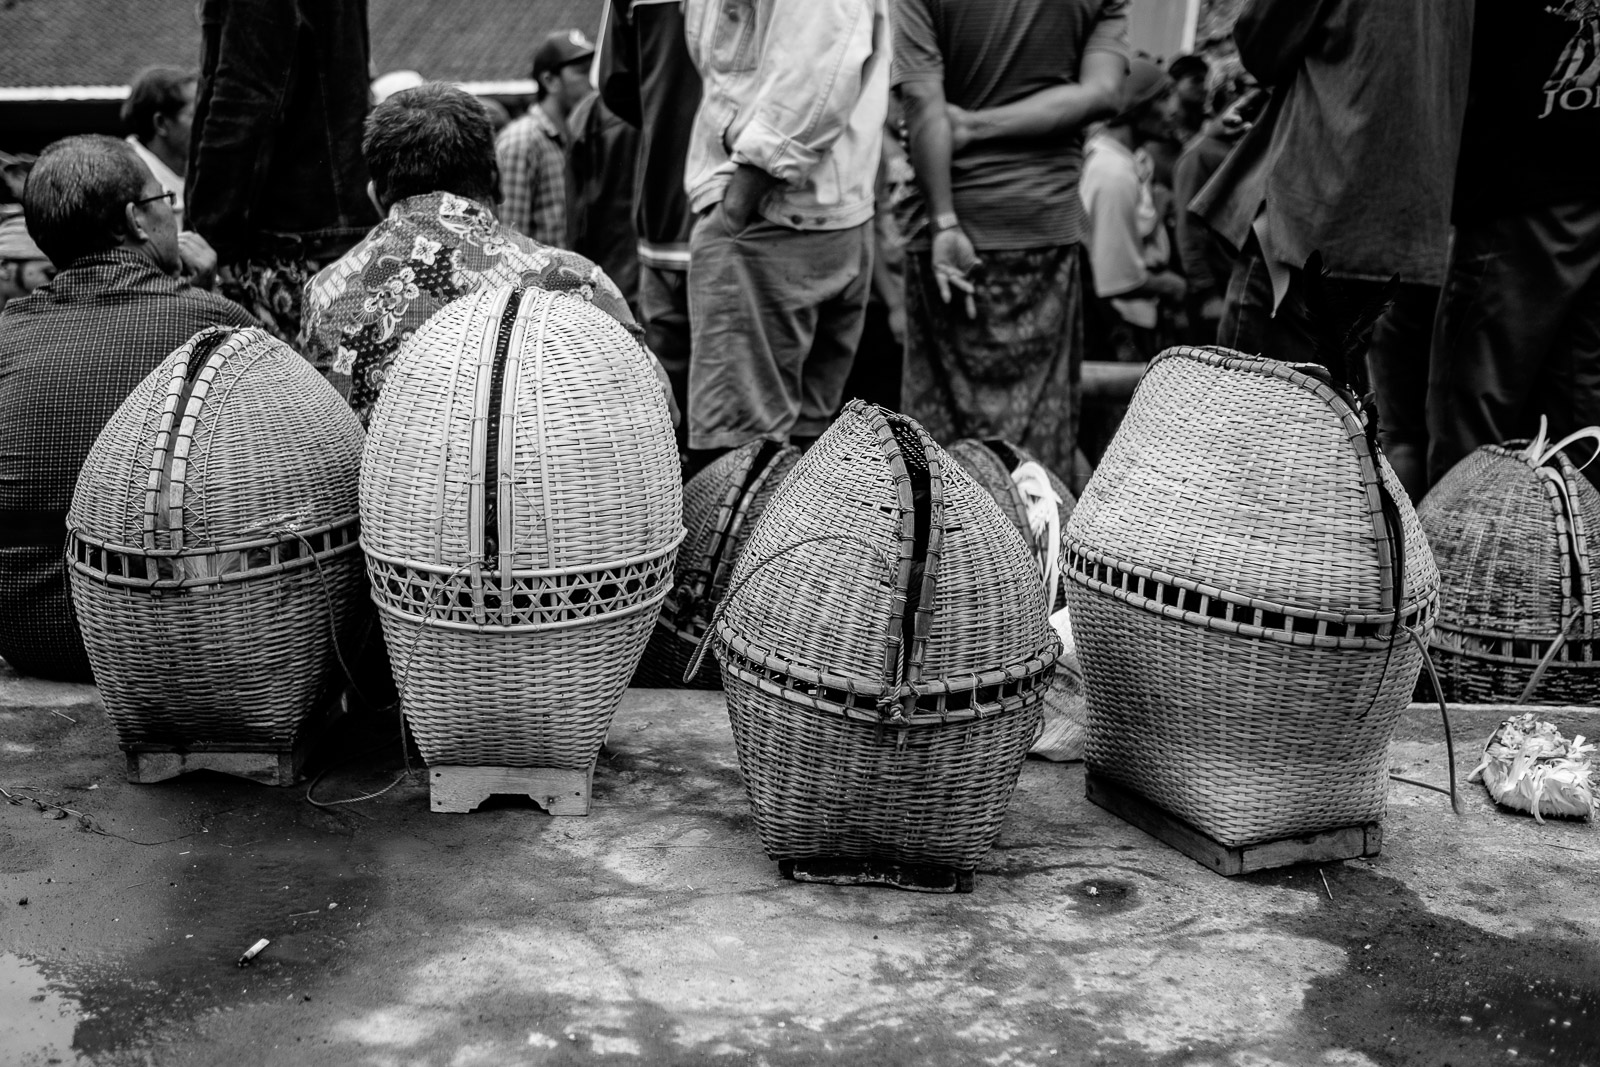 Small bamboo cages for transporting the roosters to the arena